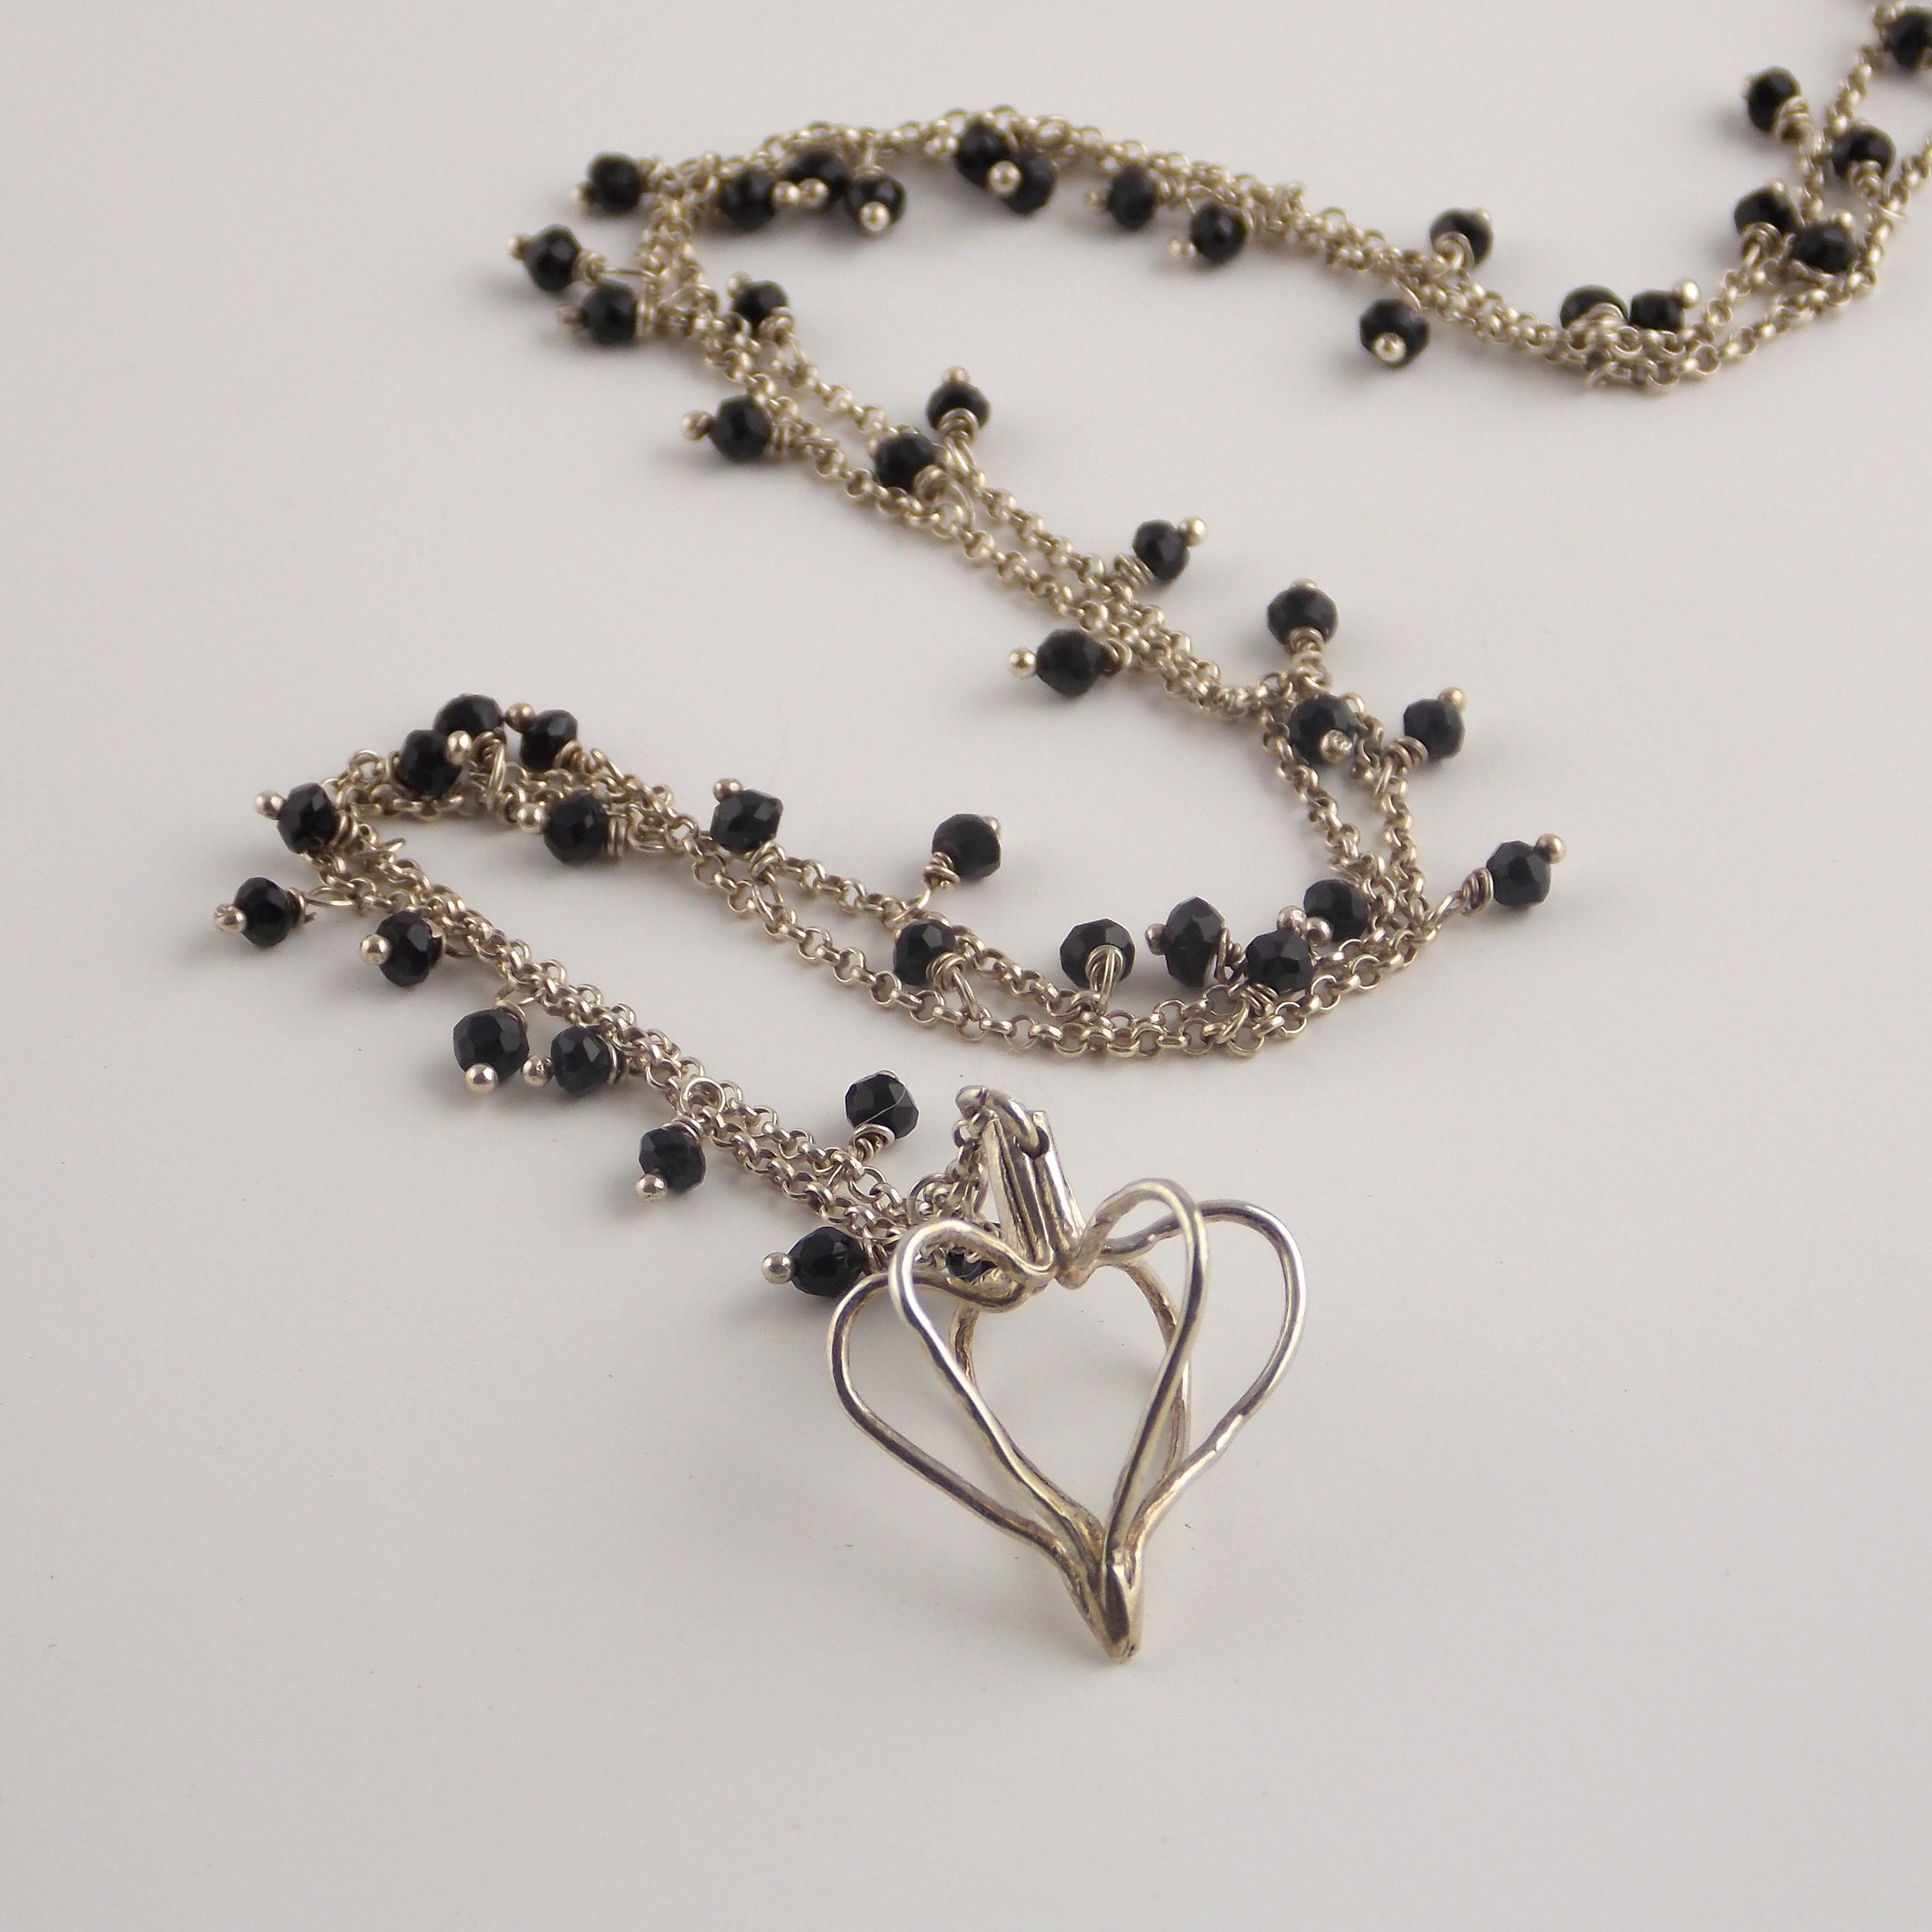 physalis neckpiece with onyx.JPG